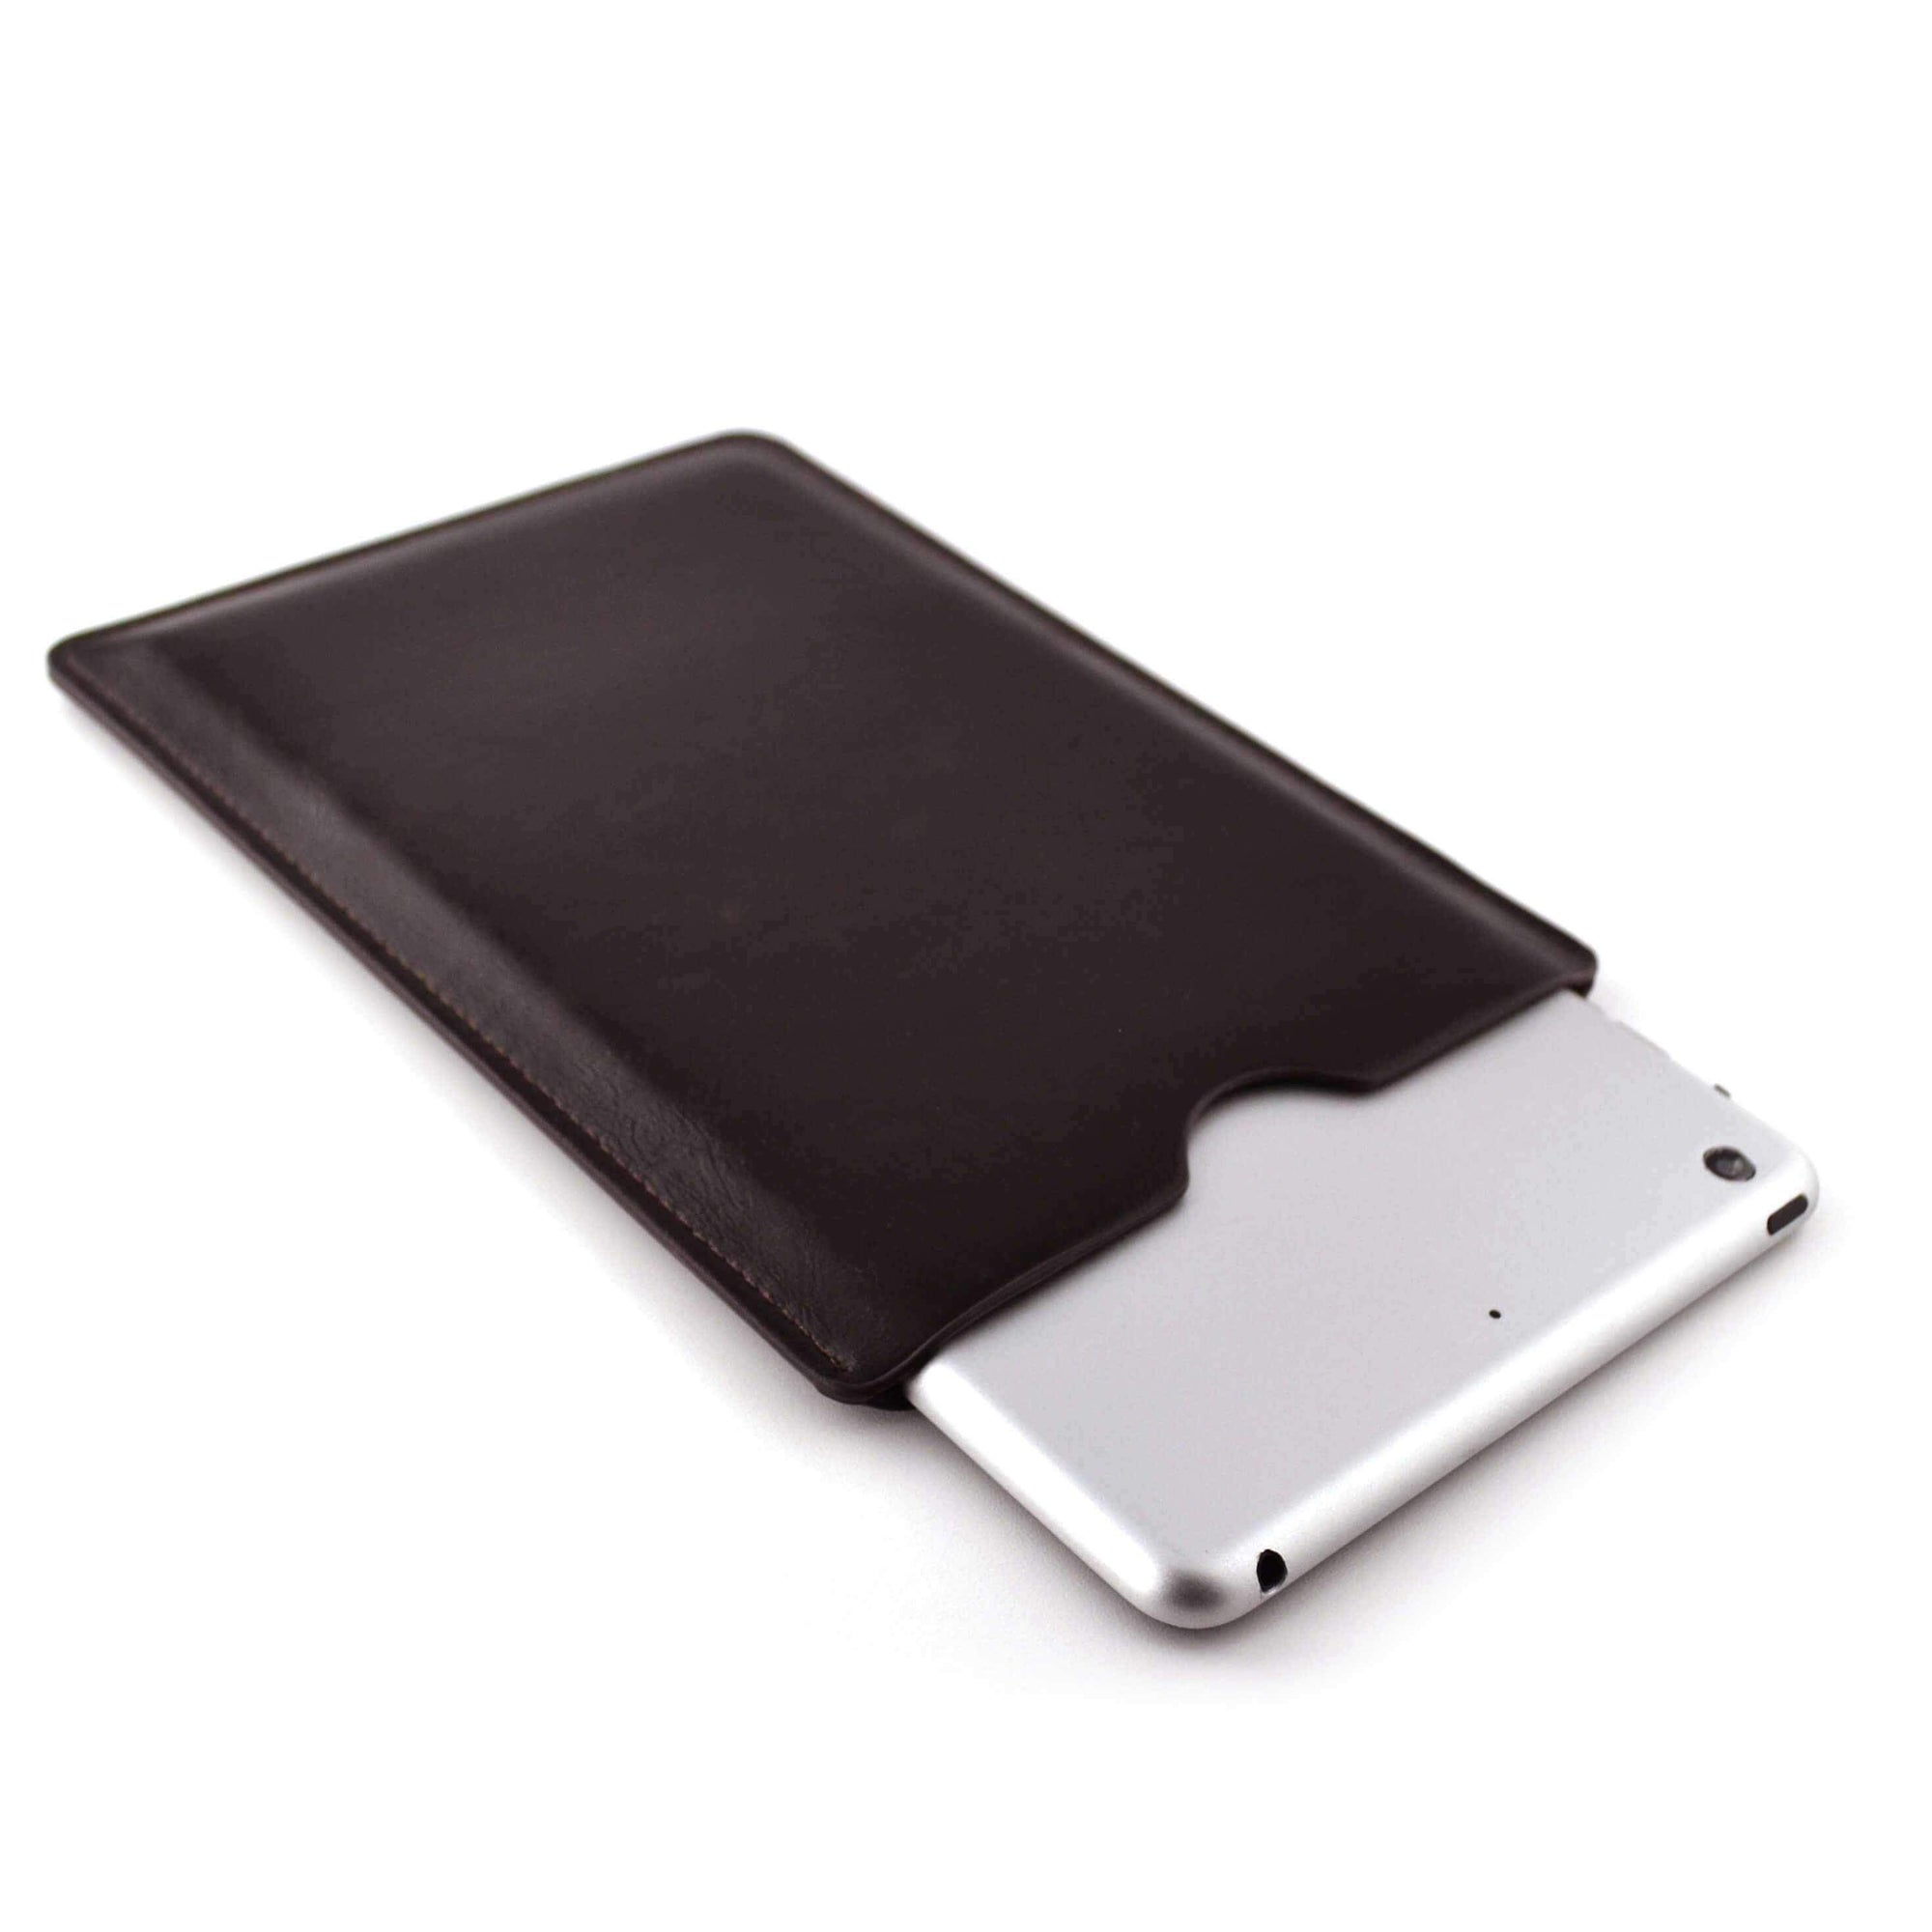 Executive Sleeve - Premium Synthetic Leather with Microfiber Lining - iPads iPad Sleeve Dockem